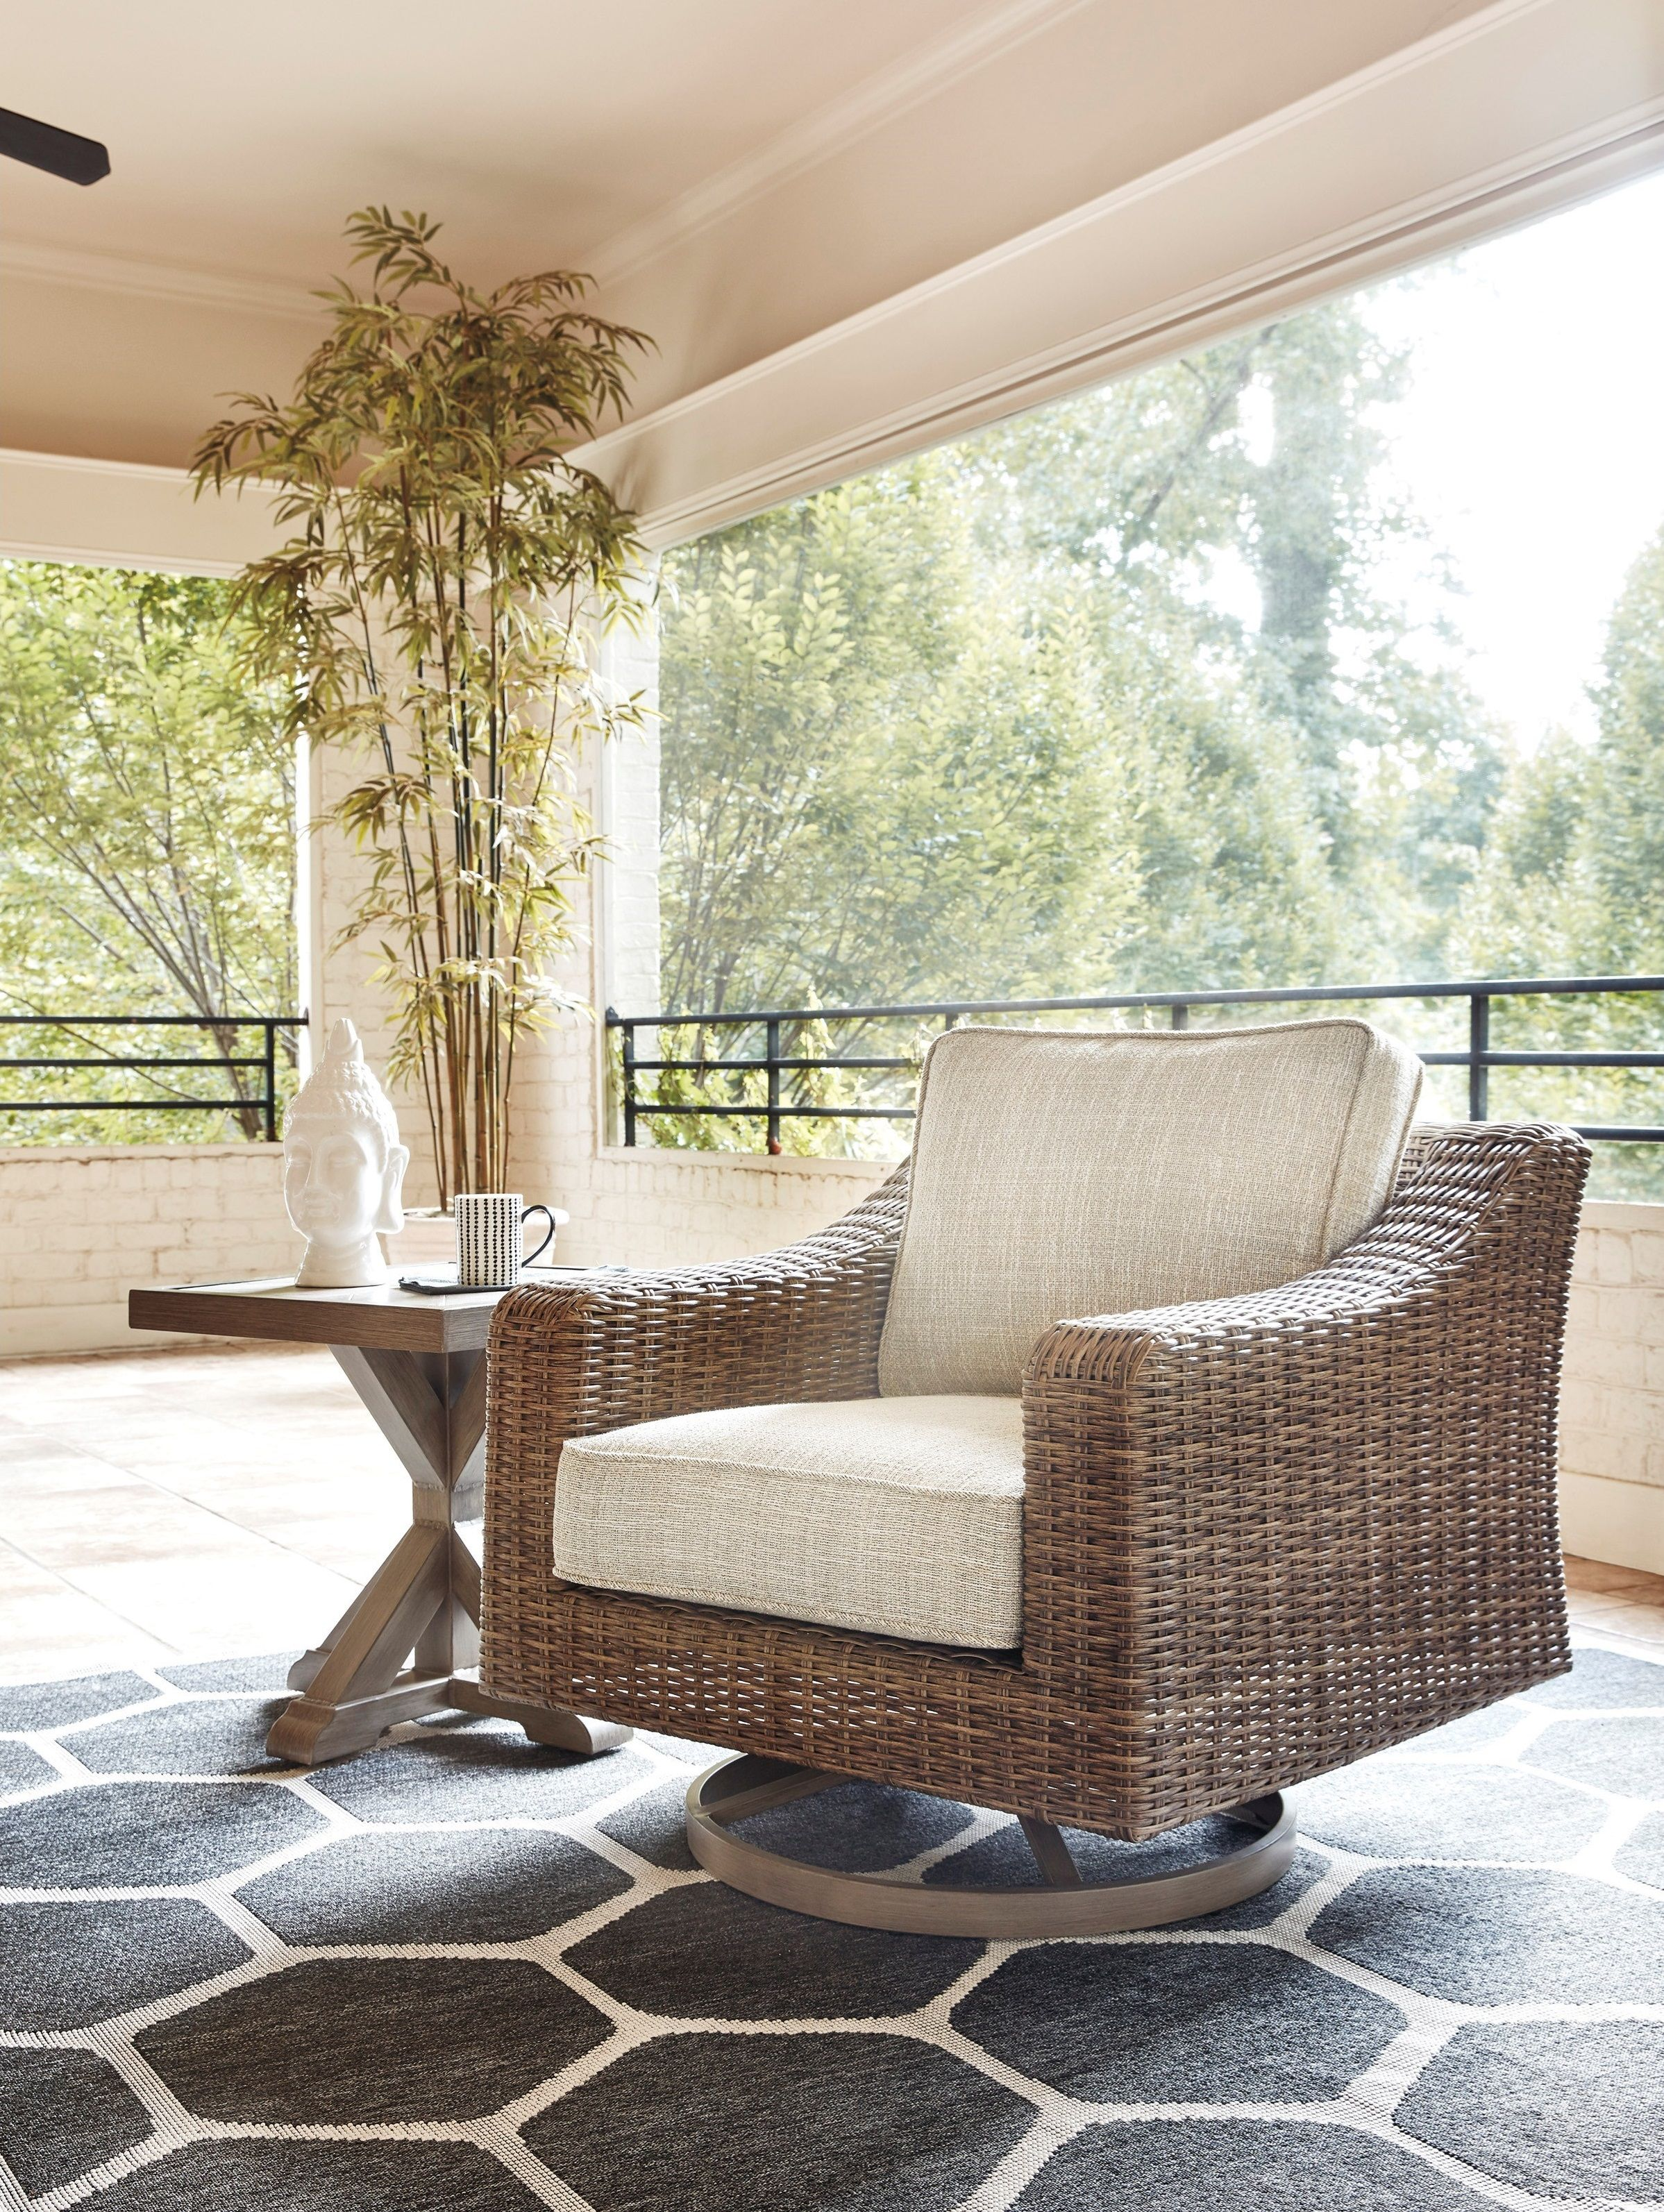 Beachcroft Swivel Lounge Chair with Cushion by Benchcraft ... on Beachcroft Beige Outdoor Living Room Set  id=57696